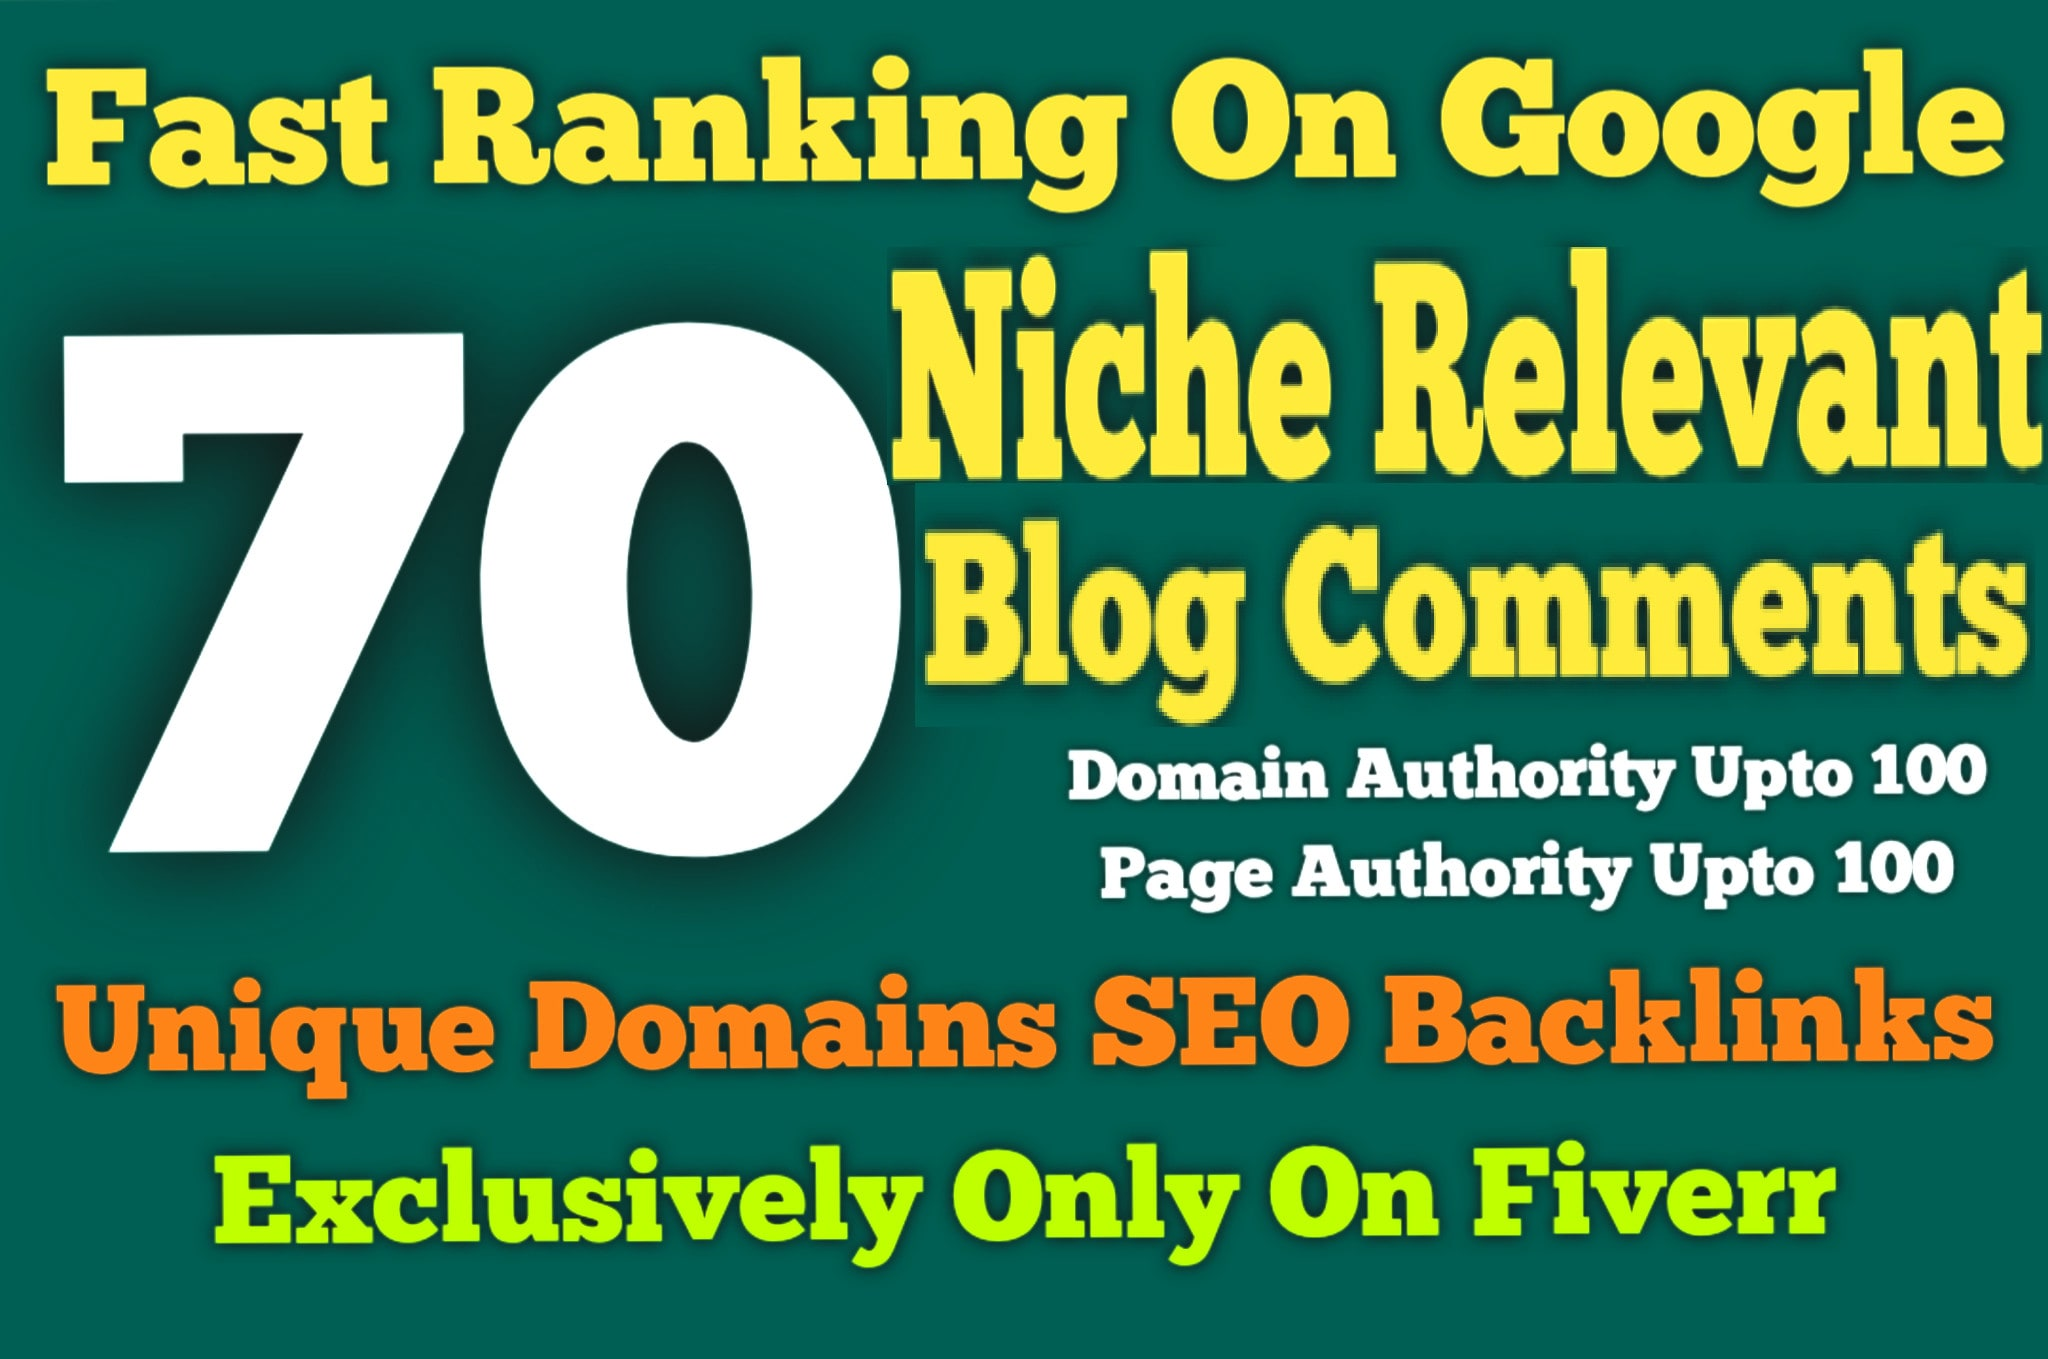 I will create 70 manual niche relevant blog comment backlinks